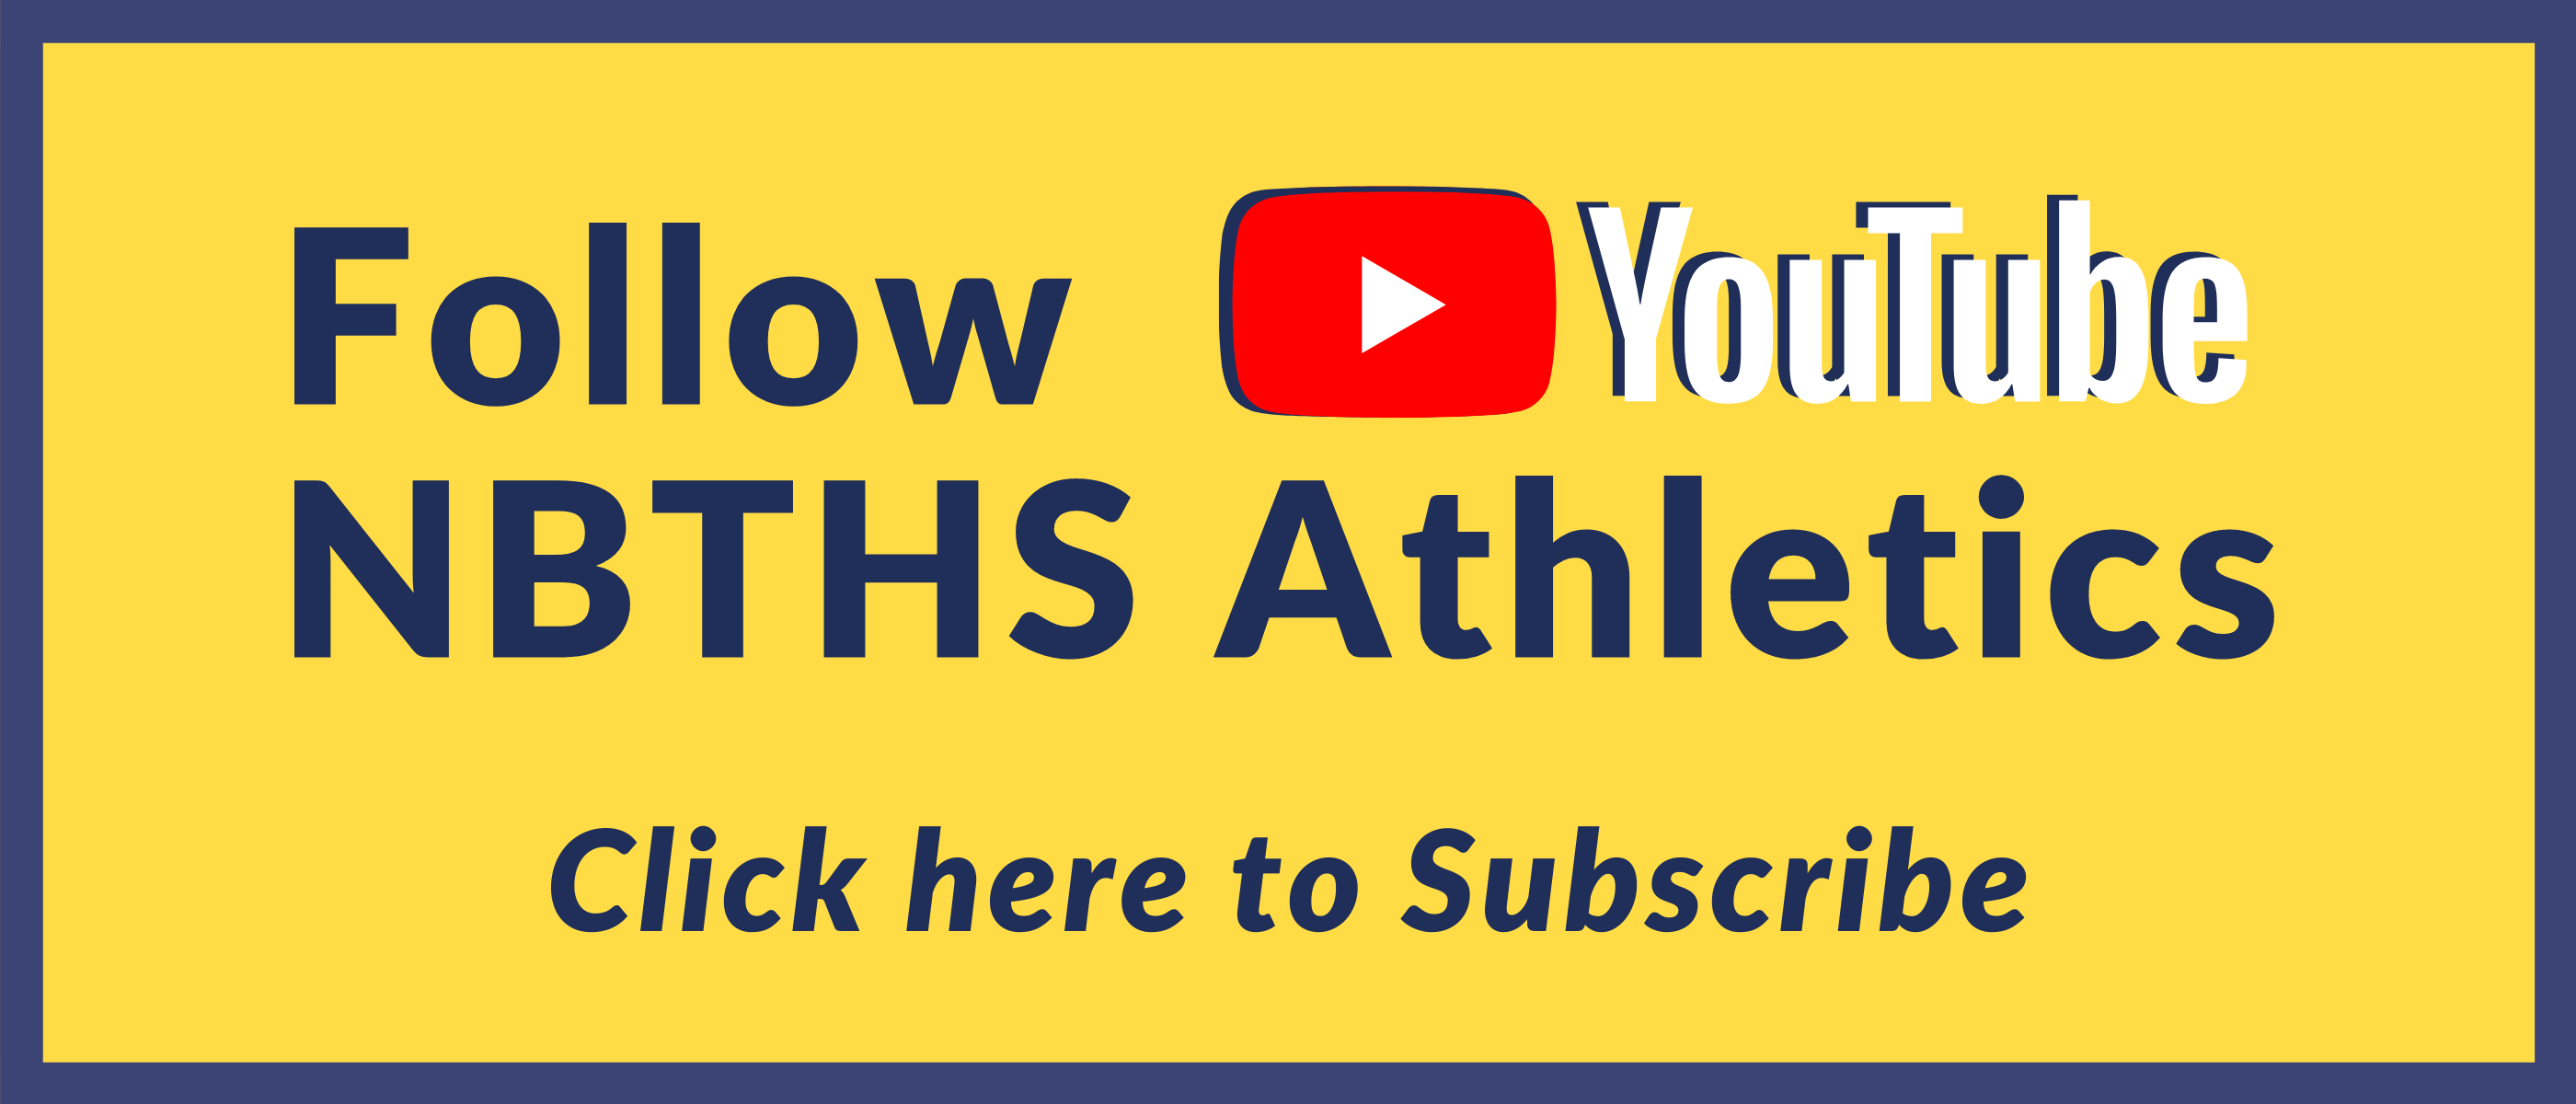 Subscribe to NBTHS Athletics on Youtube!